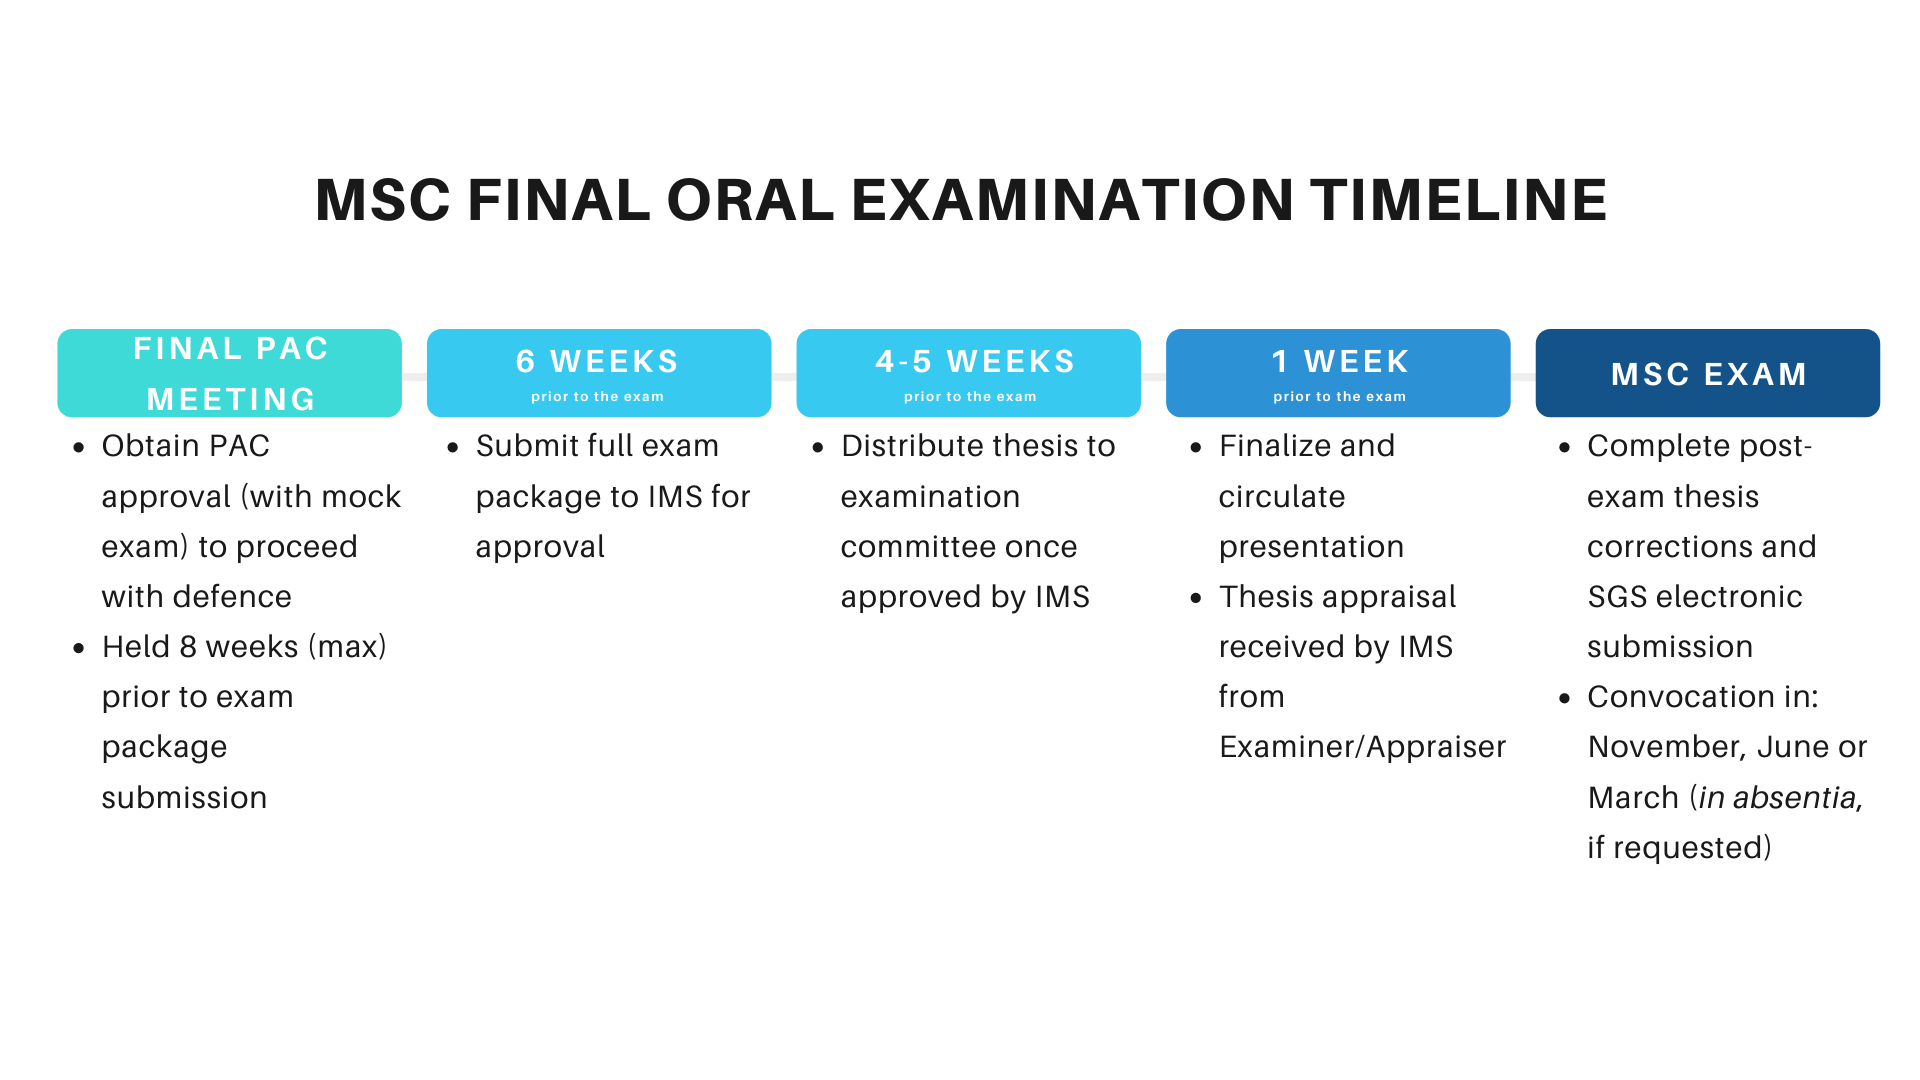 masters final oral exam timeline